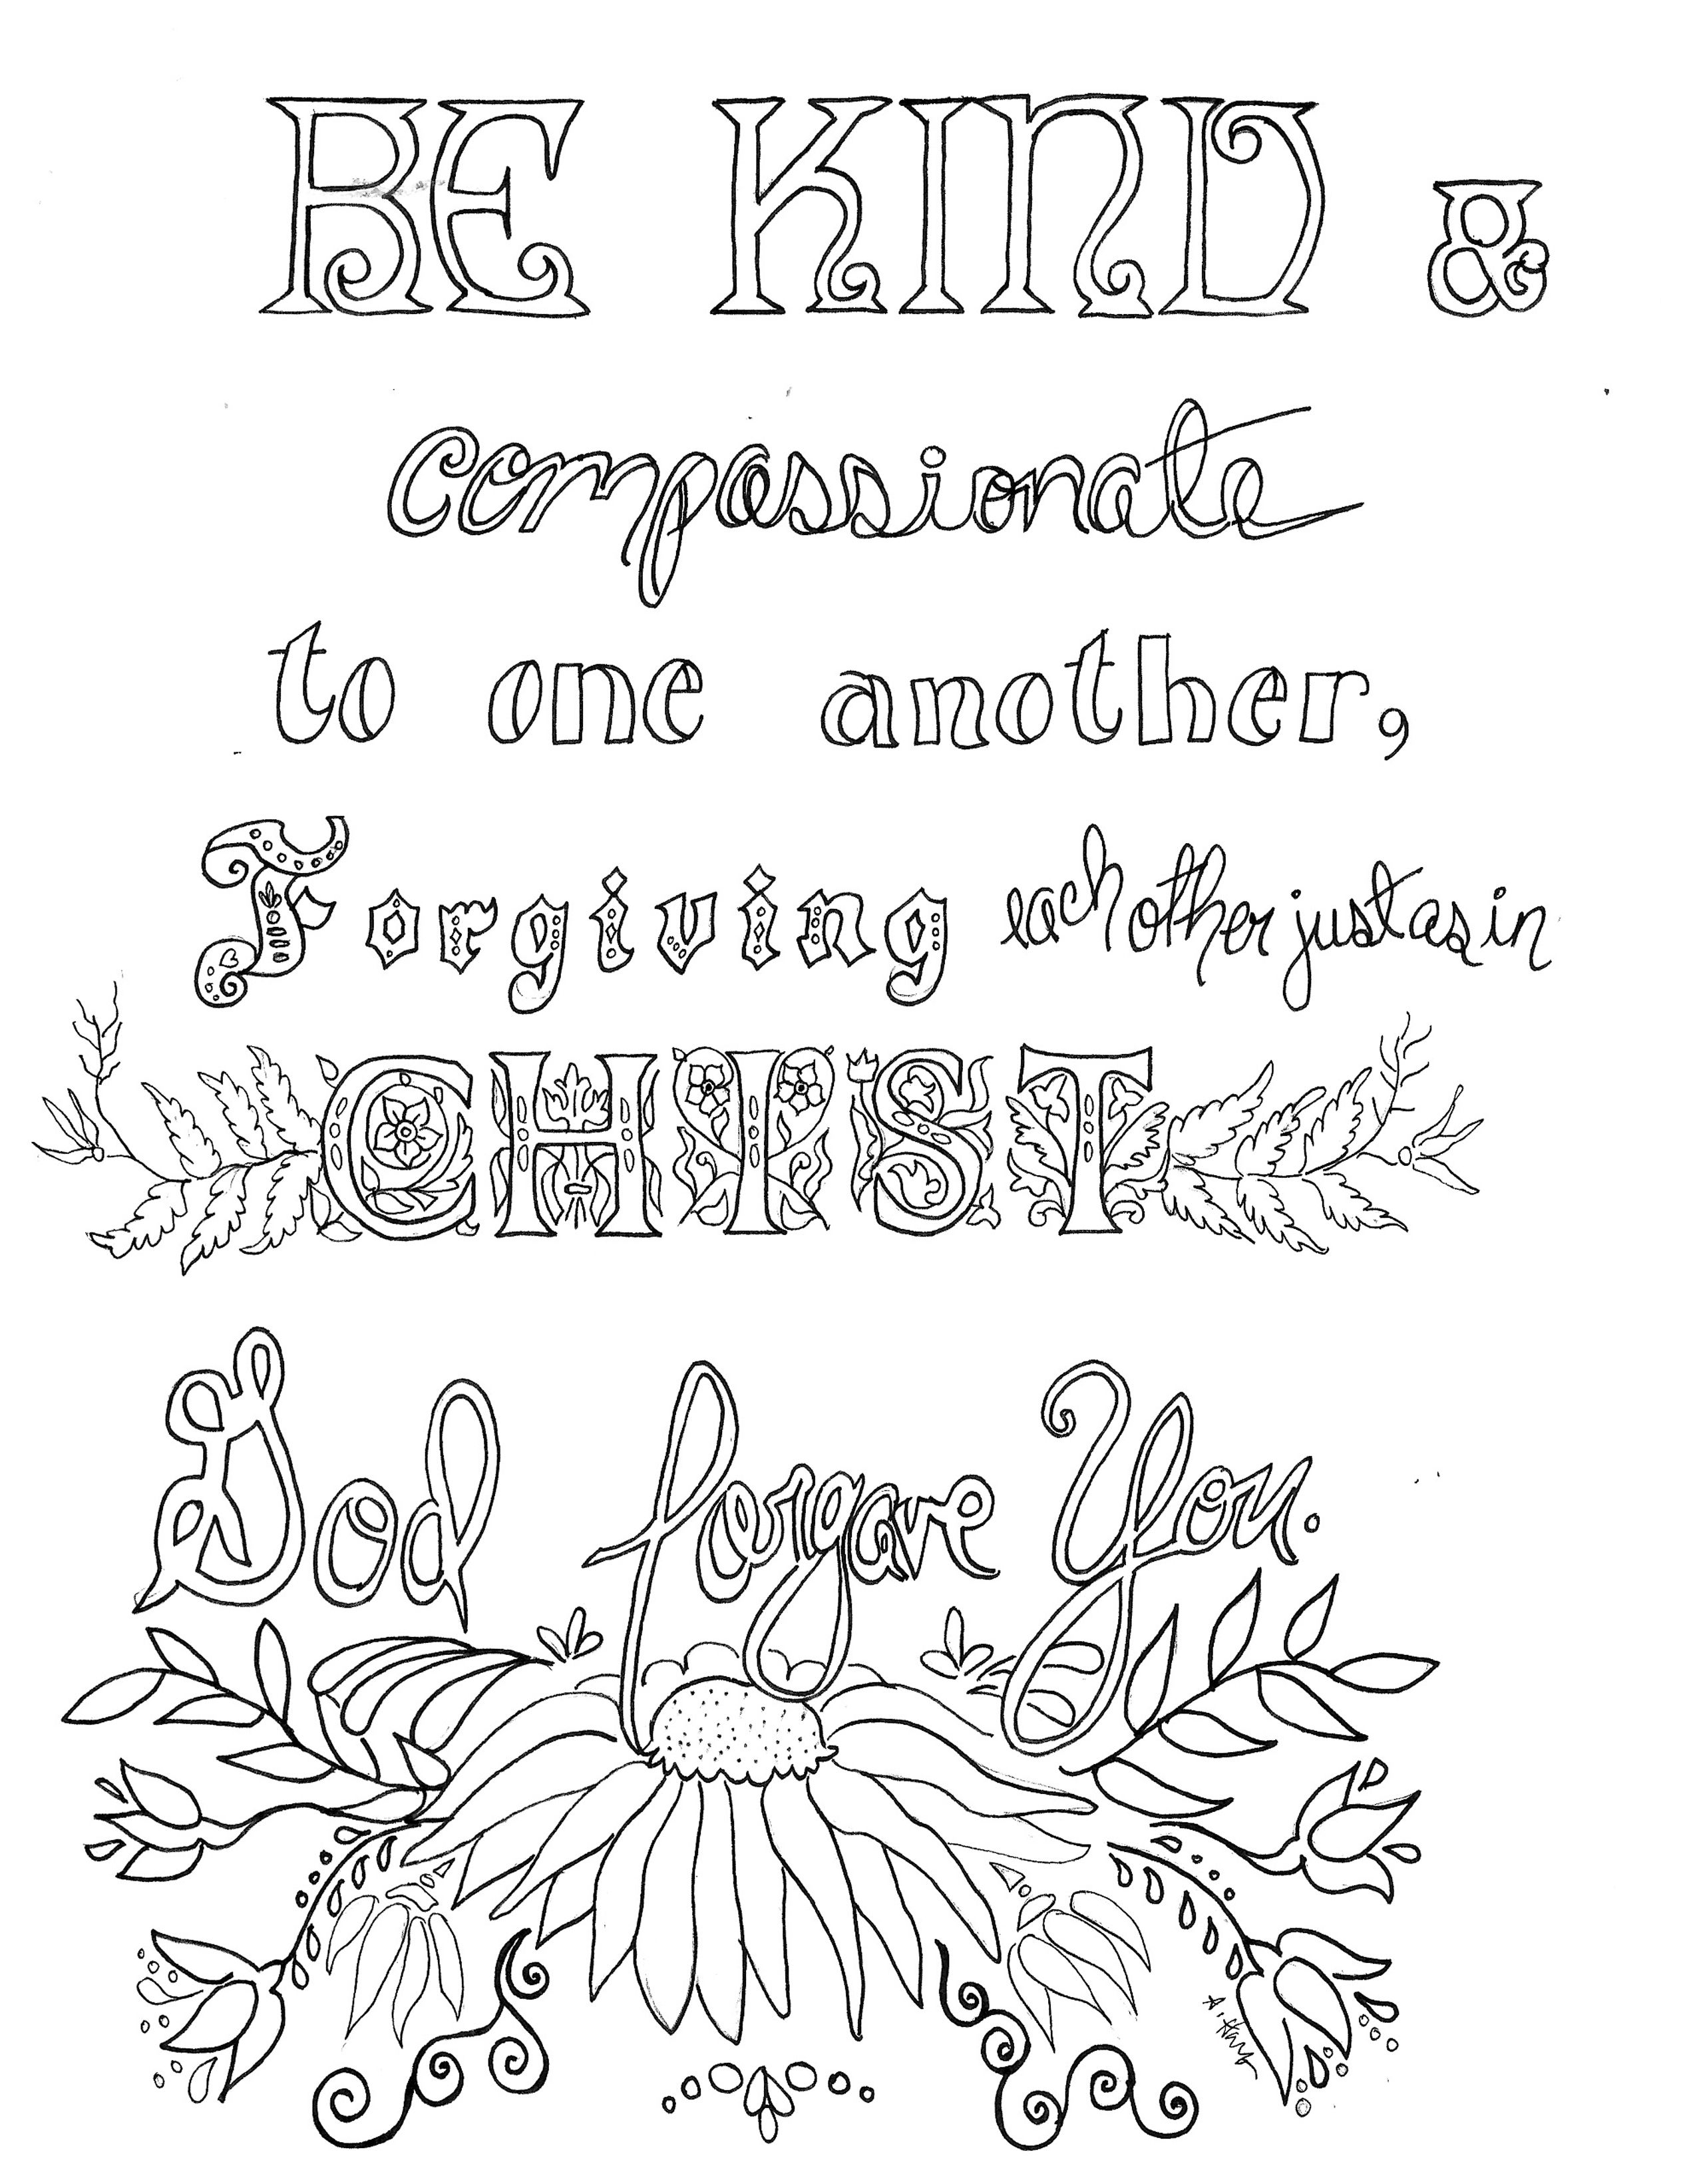 Share God S Gifts Free Scripture Coloring Art Printable 8x10